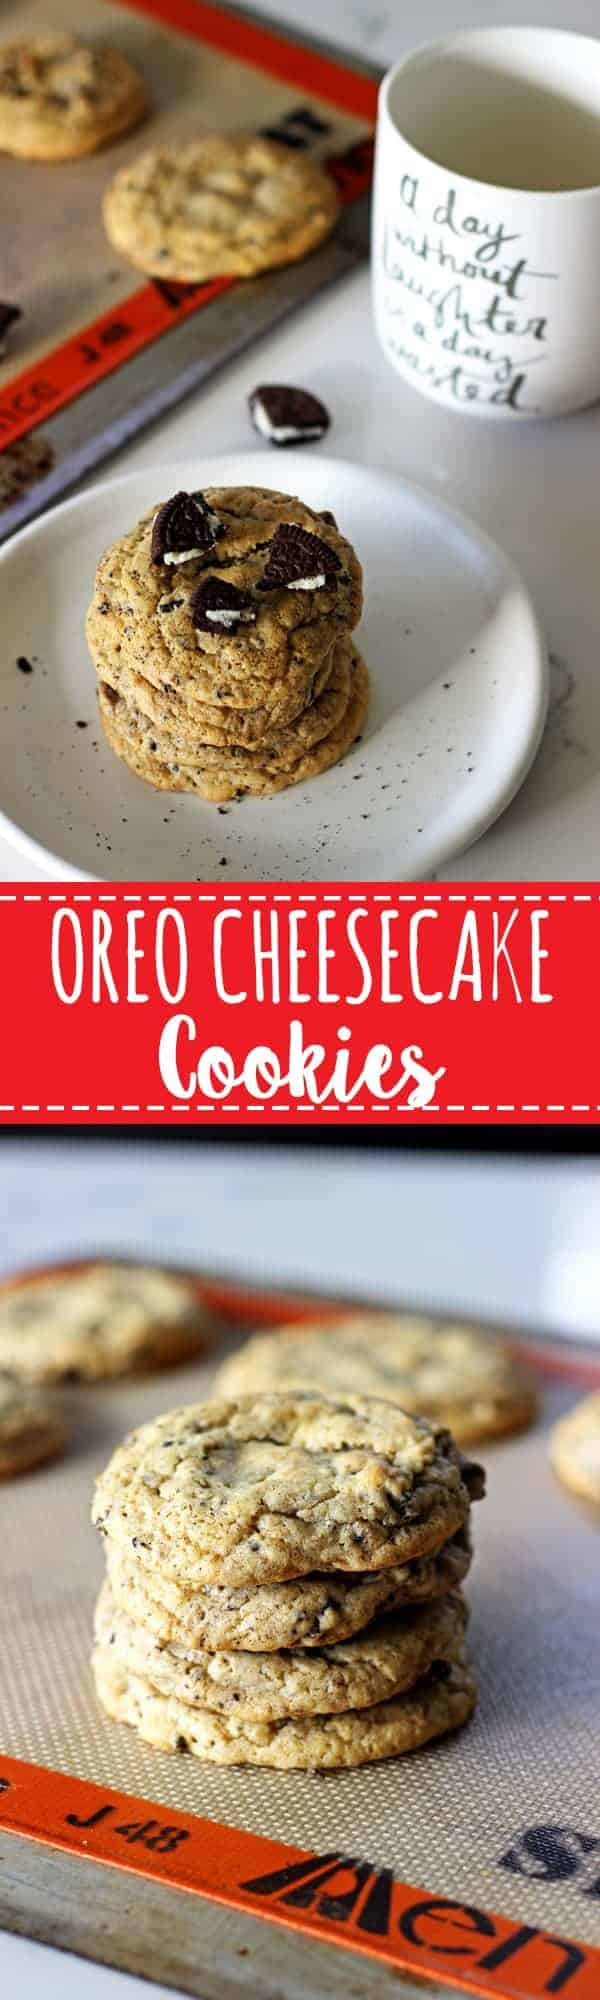 The perfect combination of cookies and cheesecake, rolled into a super quick recipe - Oreo Cheesecake Cookies with delicious cream cheese & chunks of Oreos! | thekiwicountrygirl.com